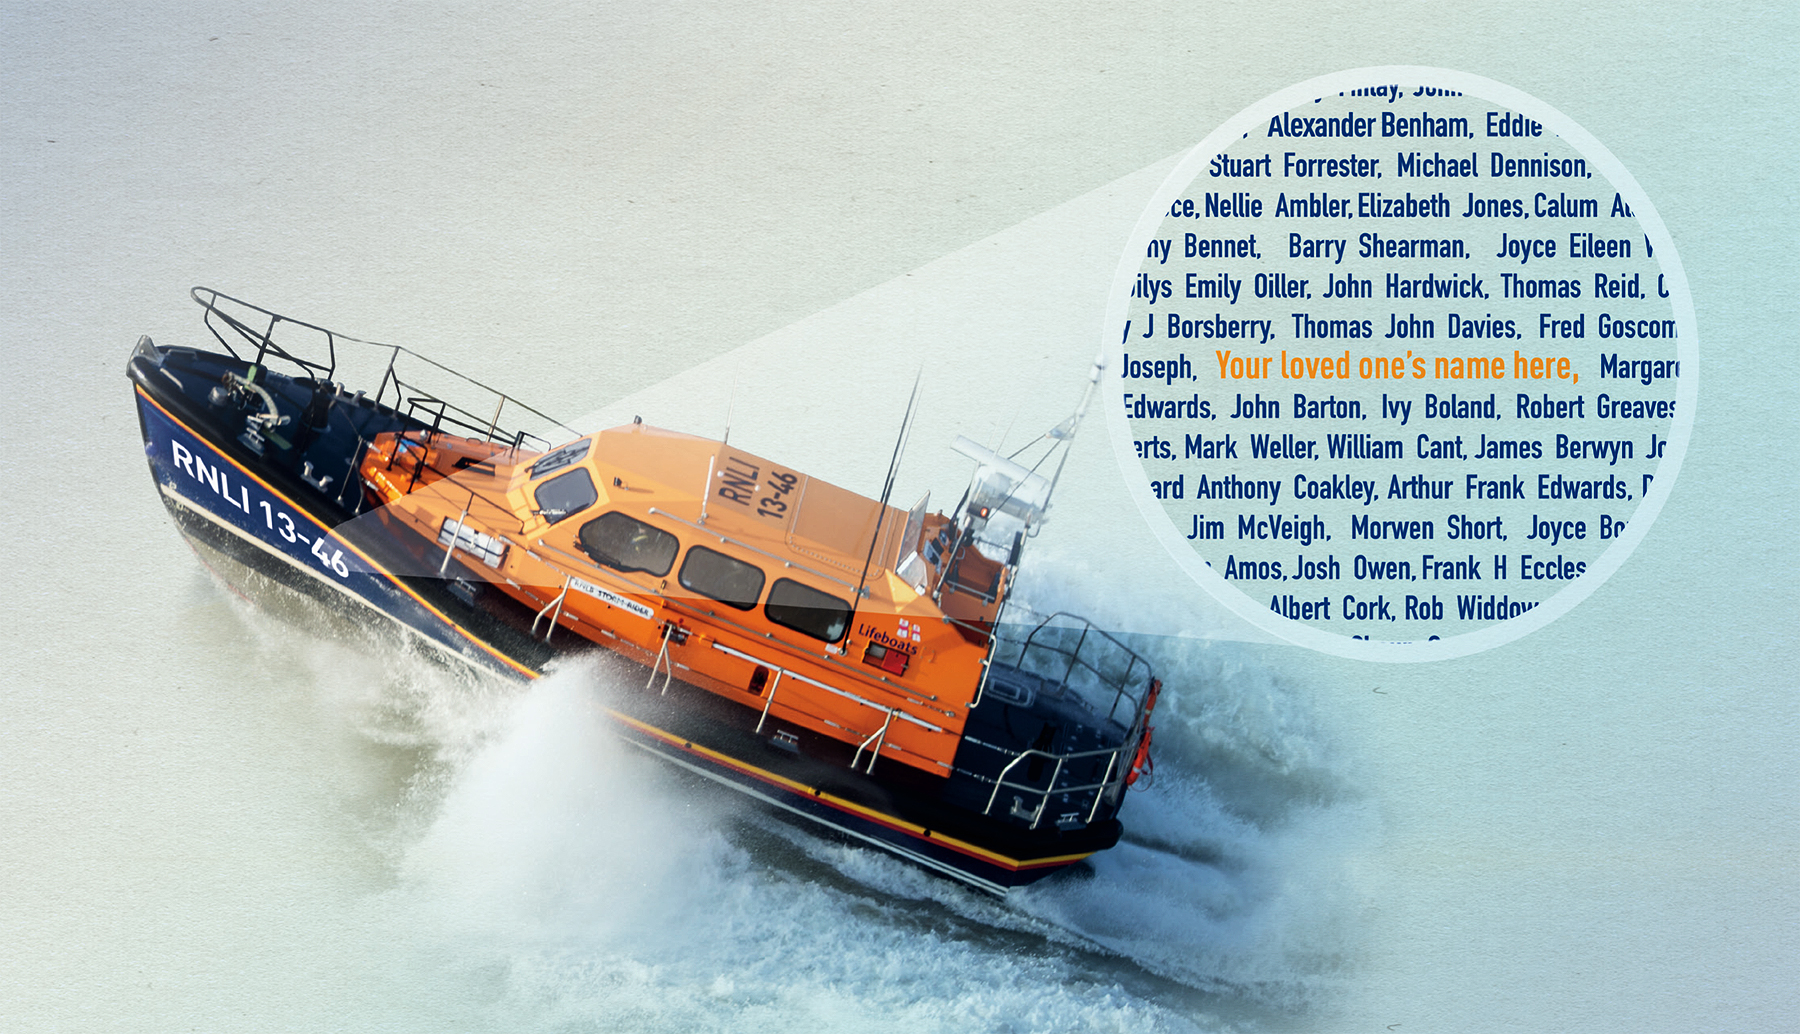 An opportunity for a loved one's name to be carried on the new Wells lifeboat...